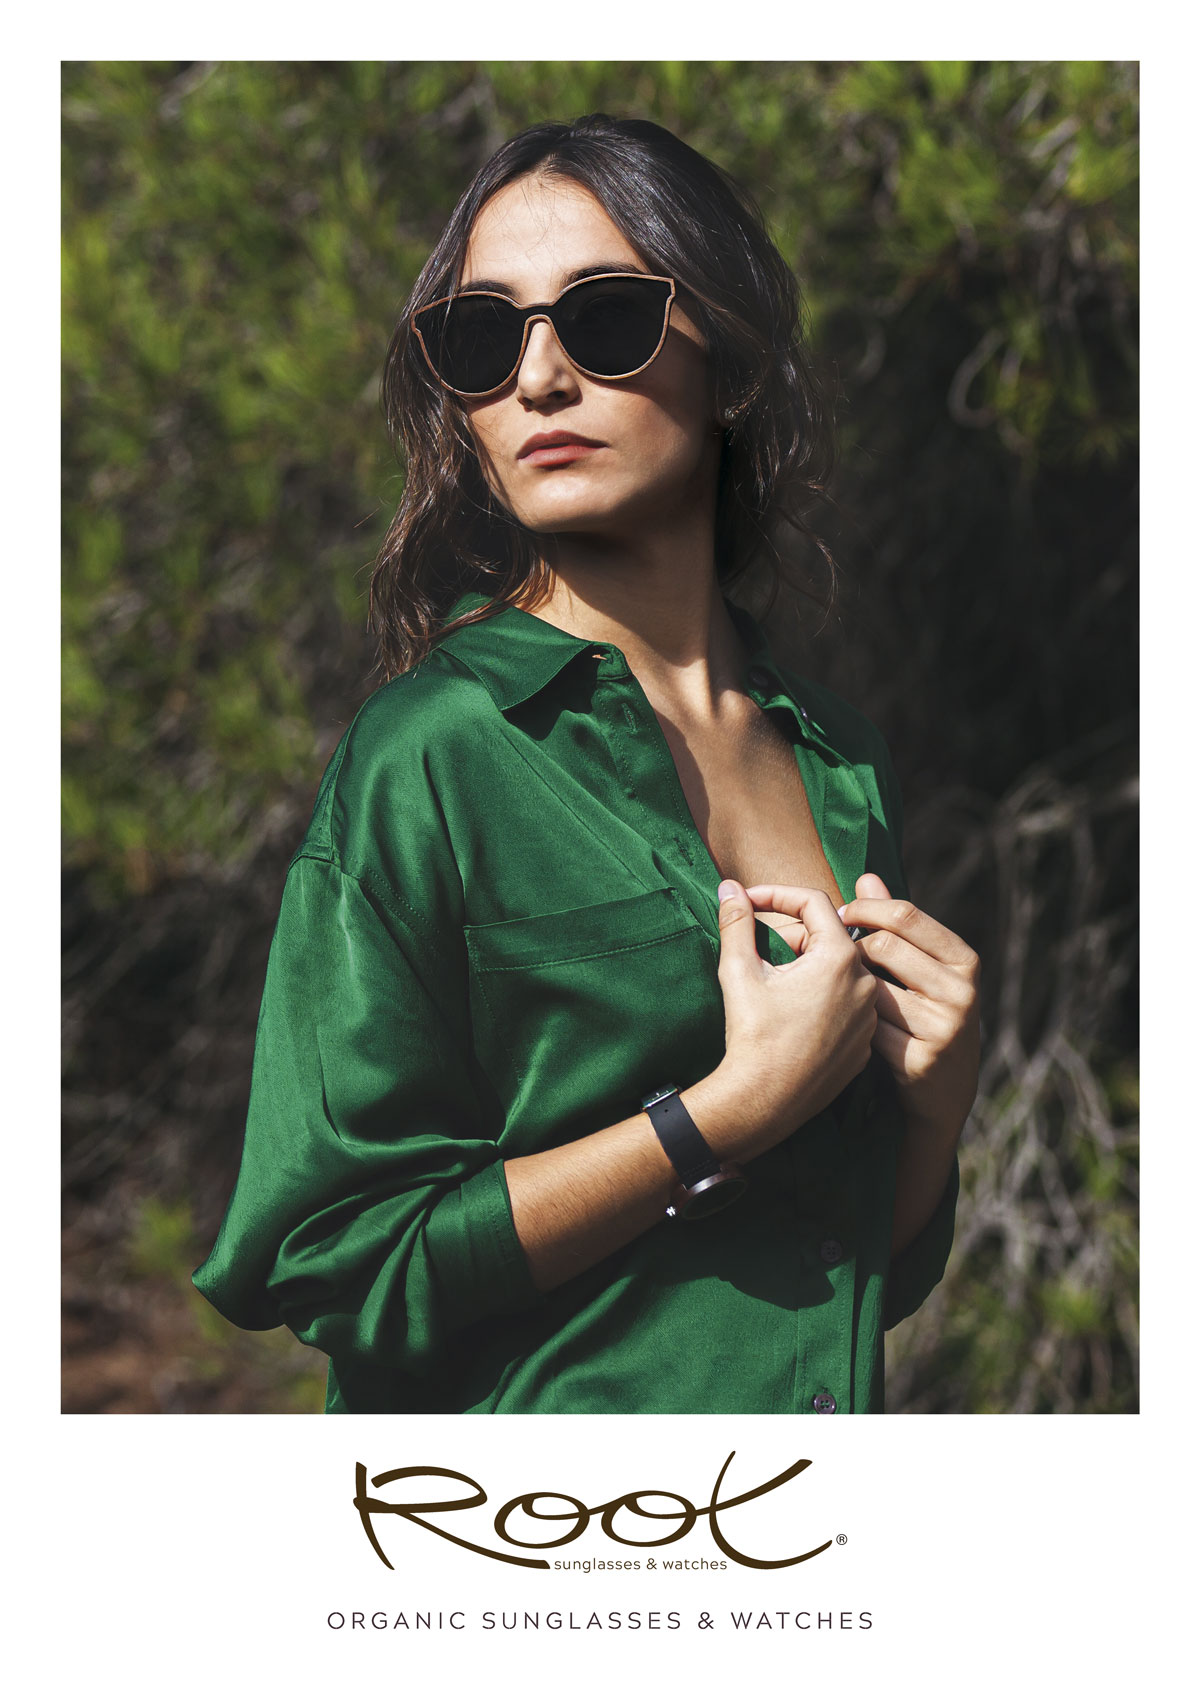 Wooden sunglasses New arrivals 2020